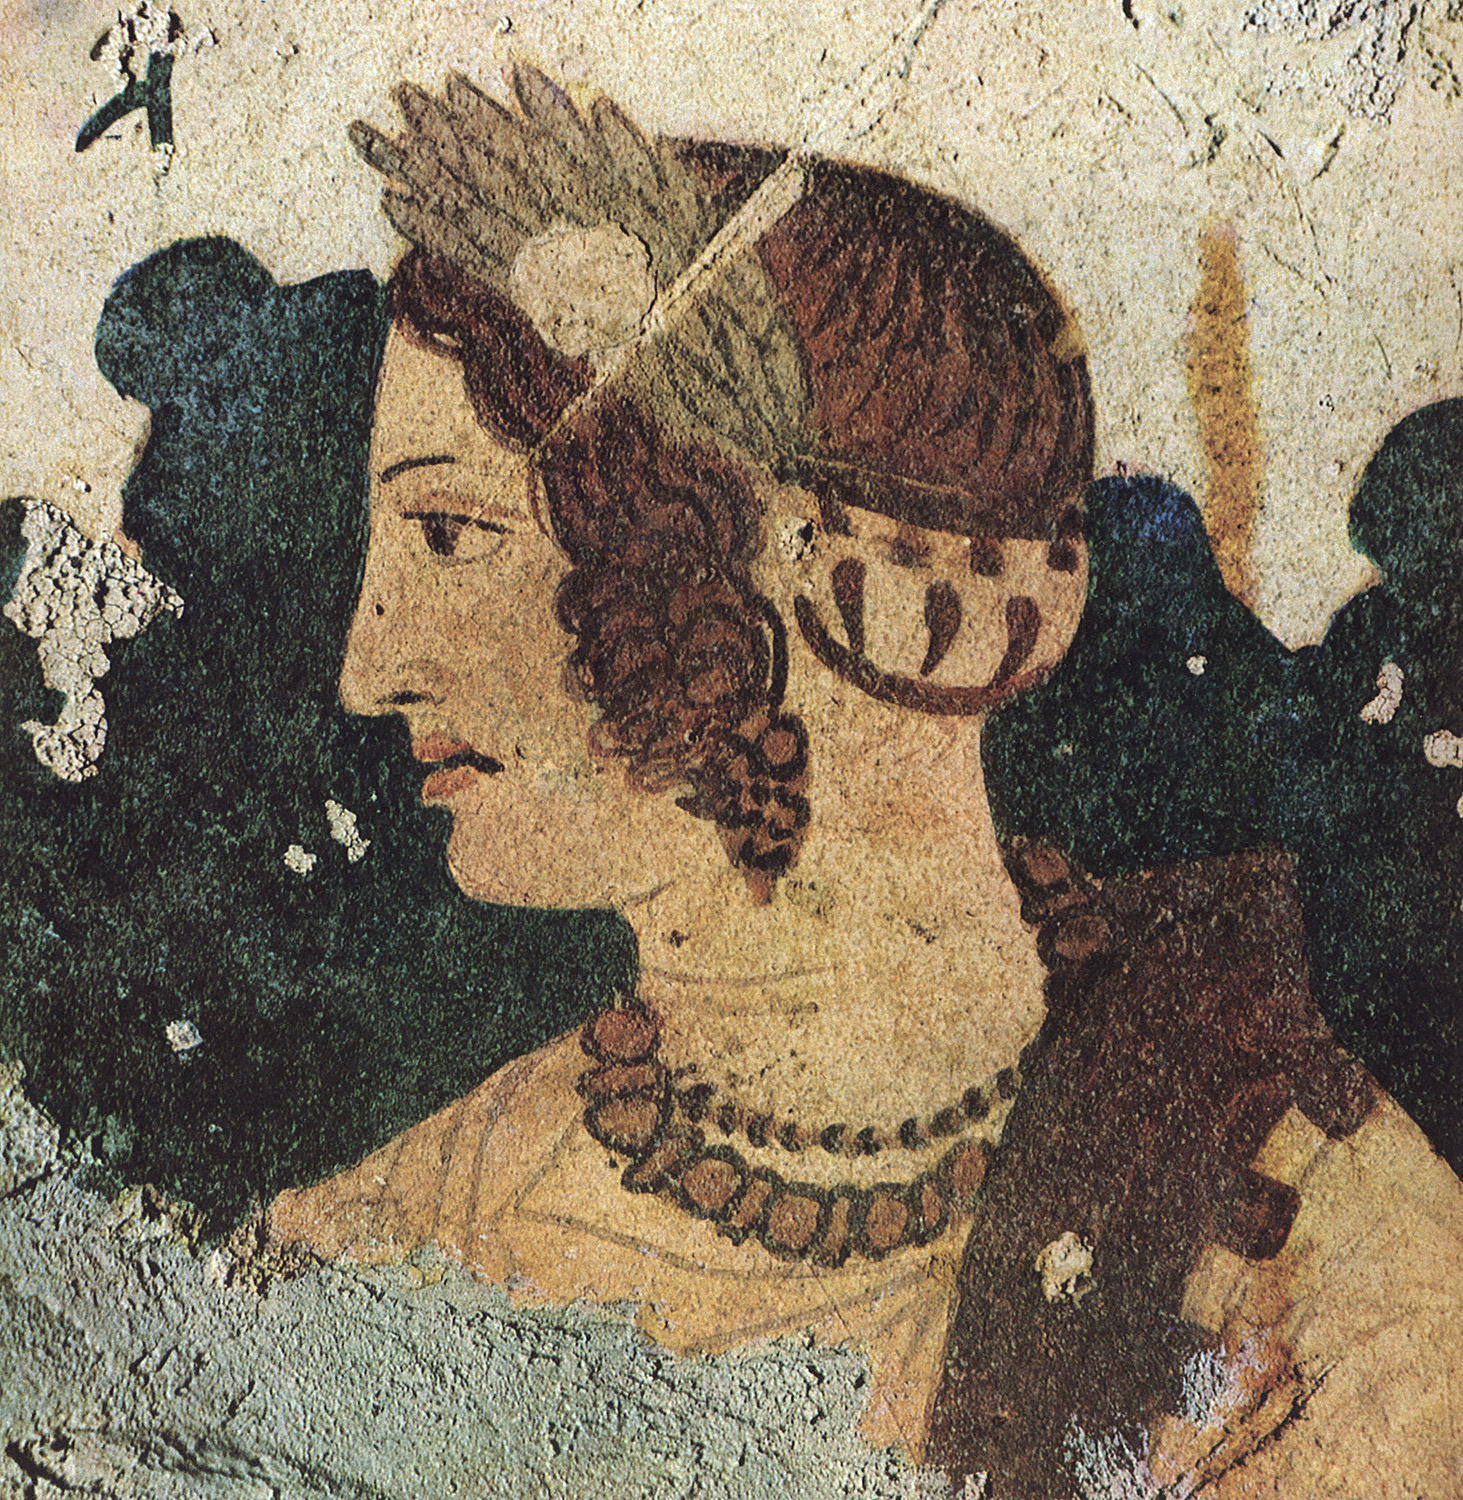 Female face. Ca. 280—150 BCE. Tarquinia, Tomb of the Orcus